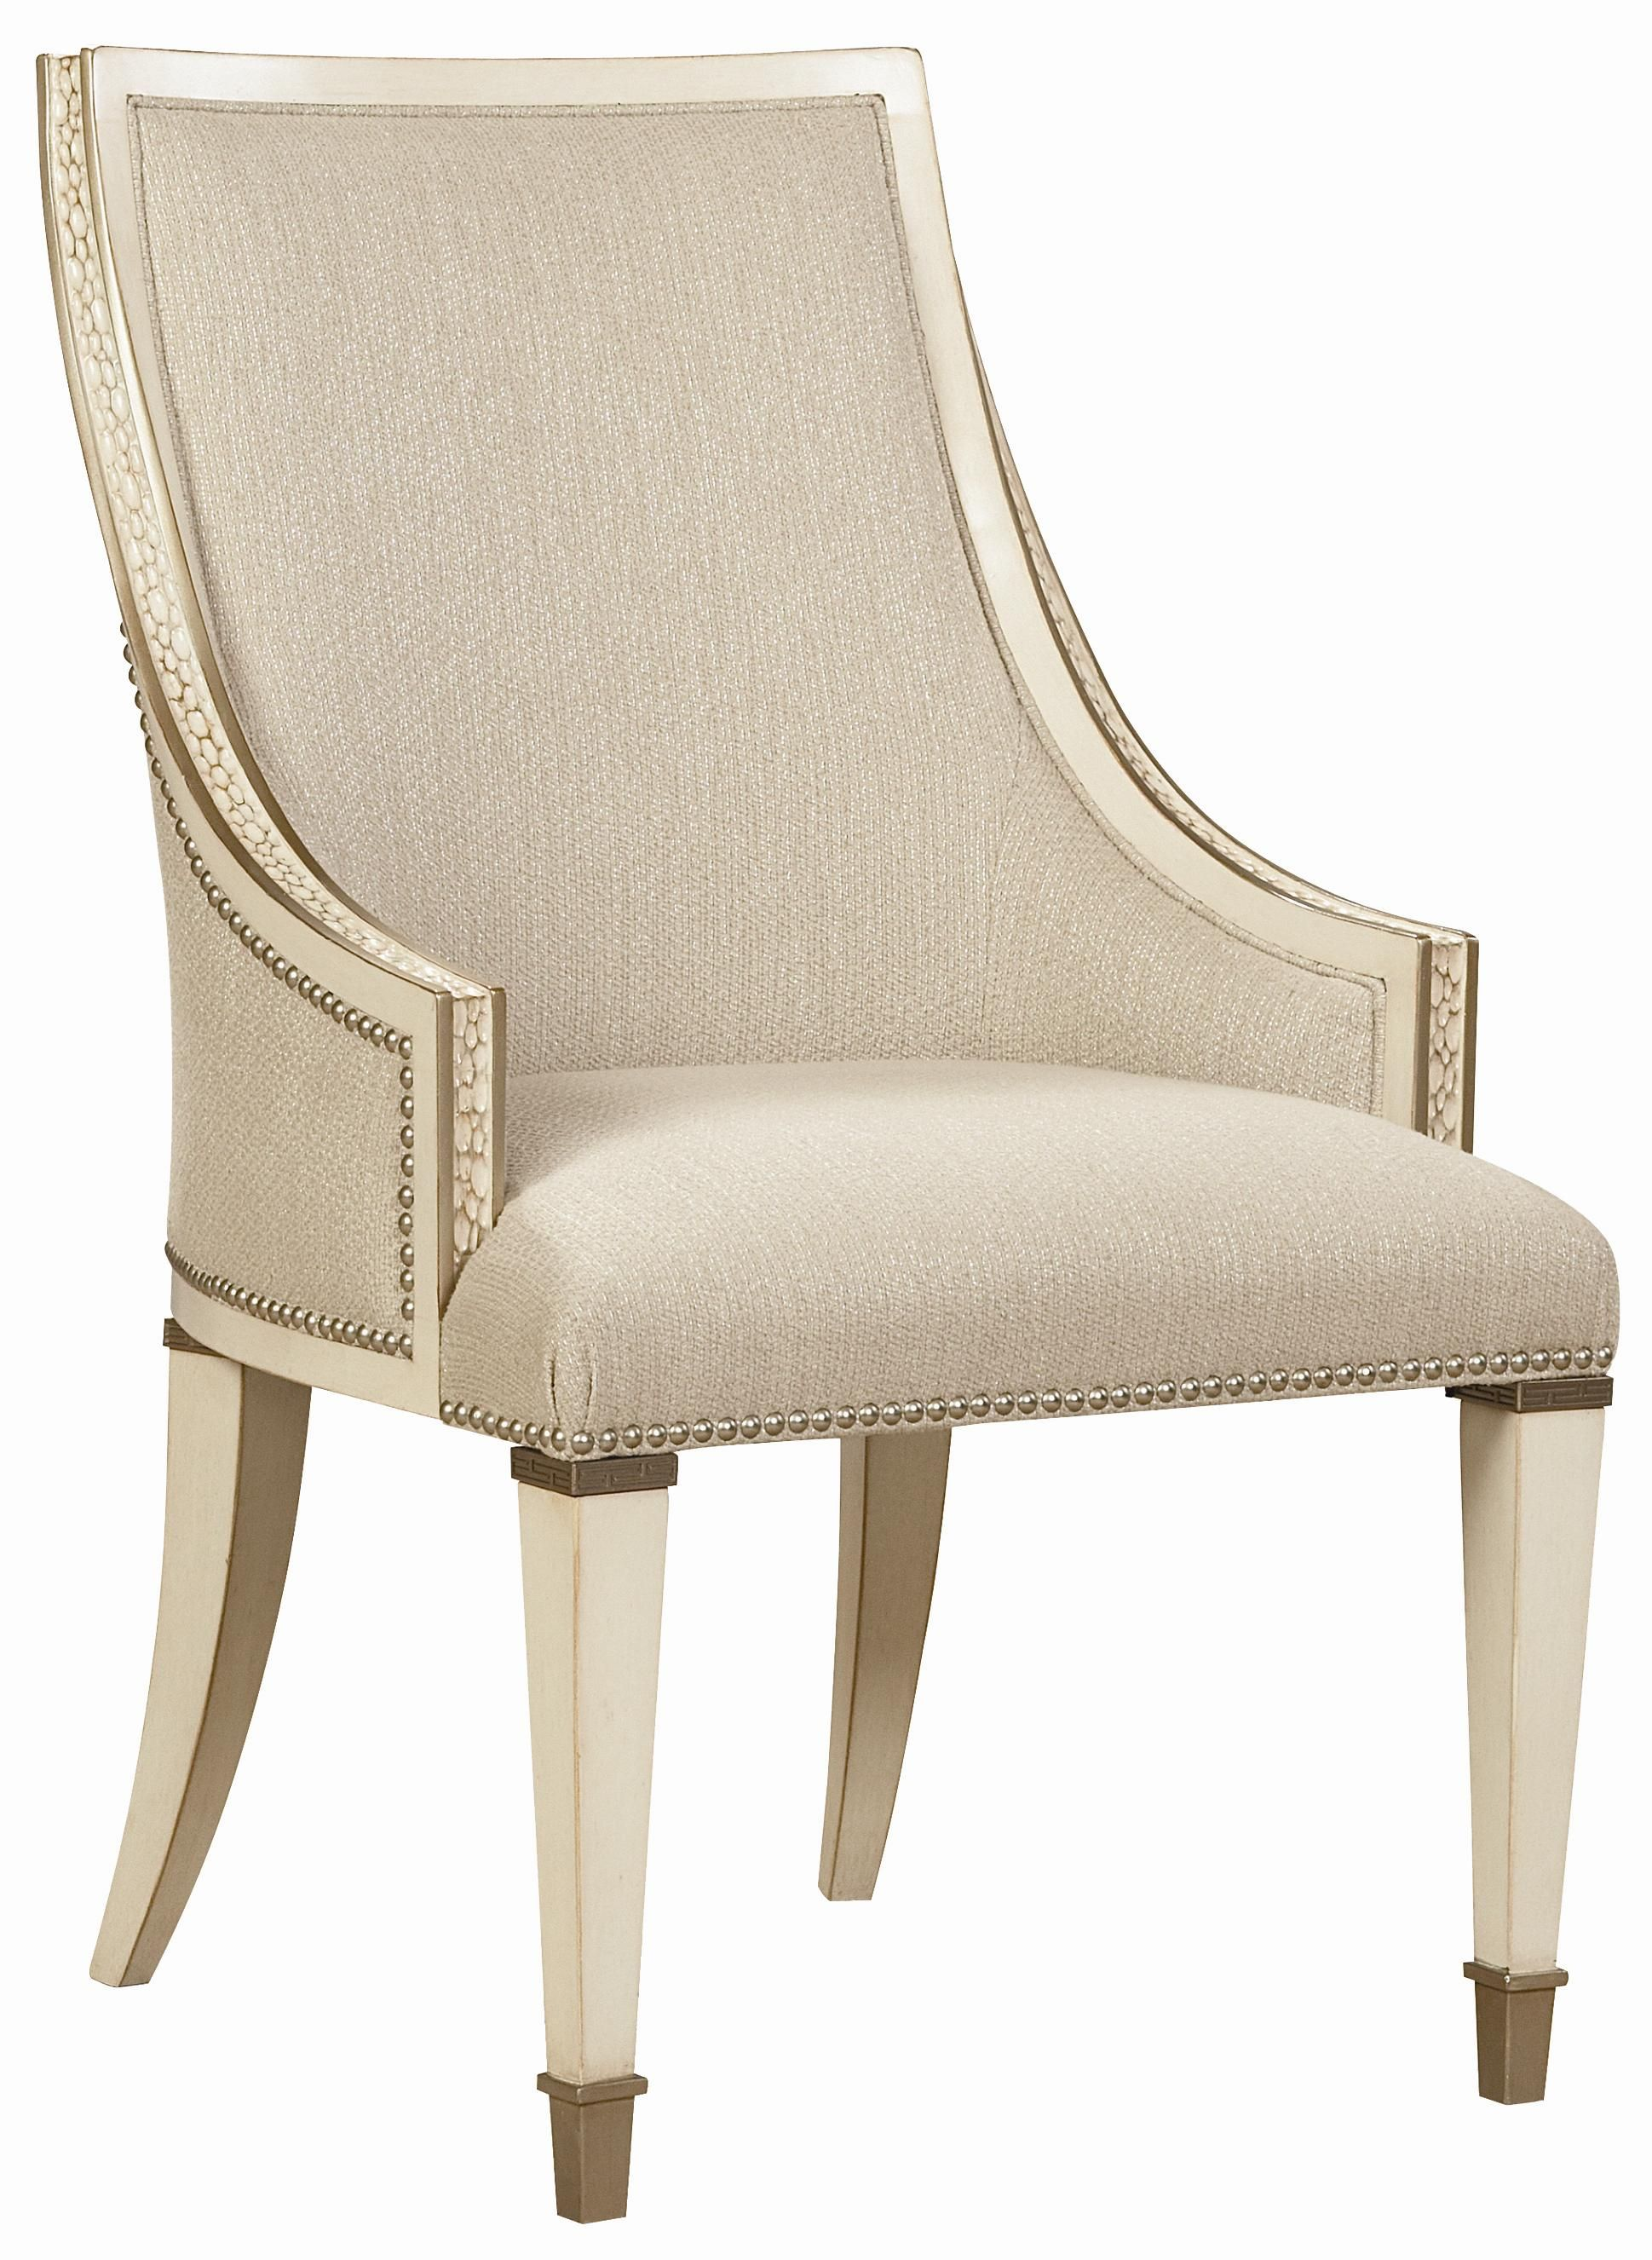 Carleton Dining Room Arm Chair By Schnadig